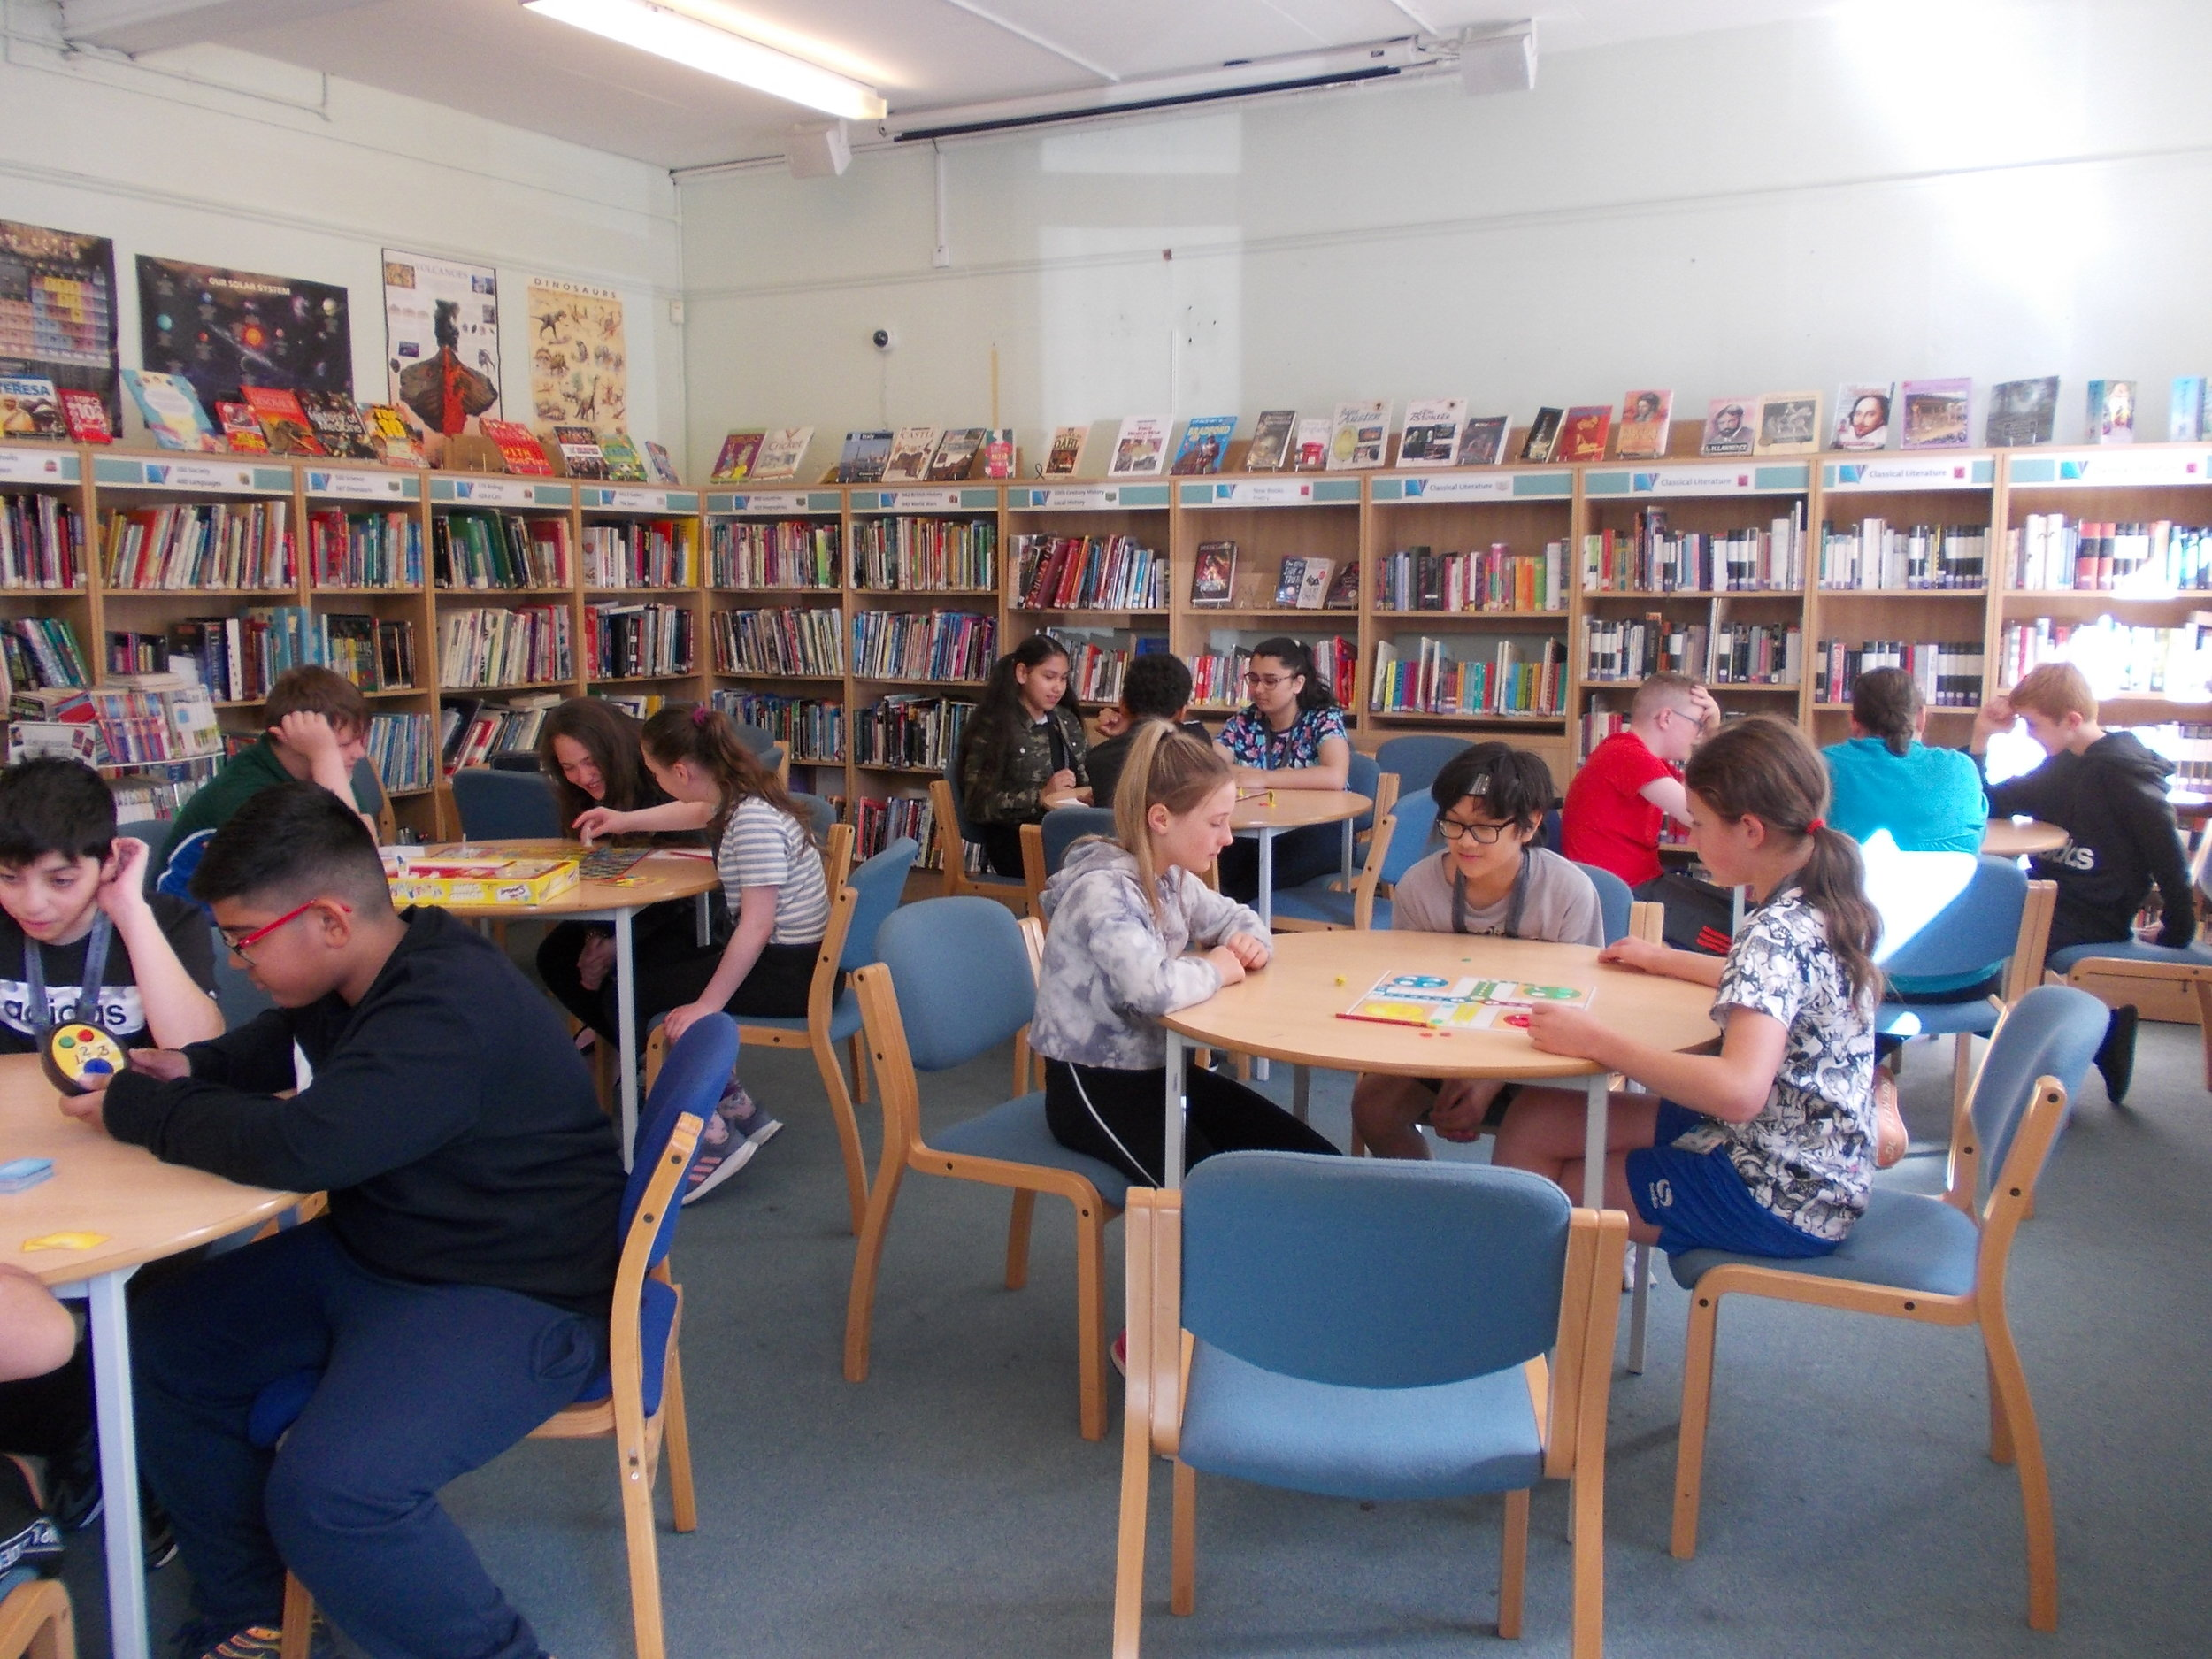 Board games in the library